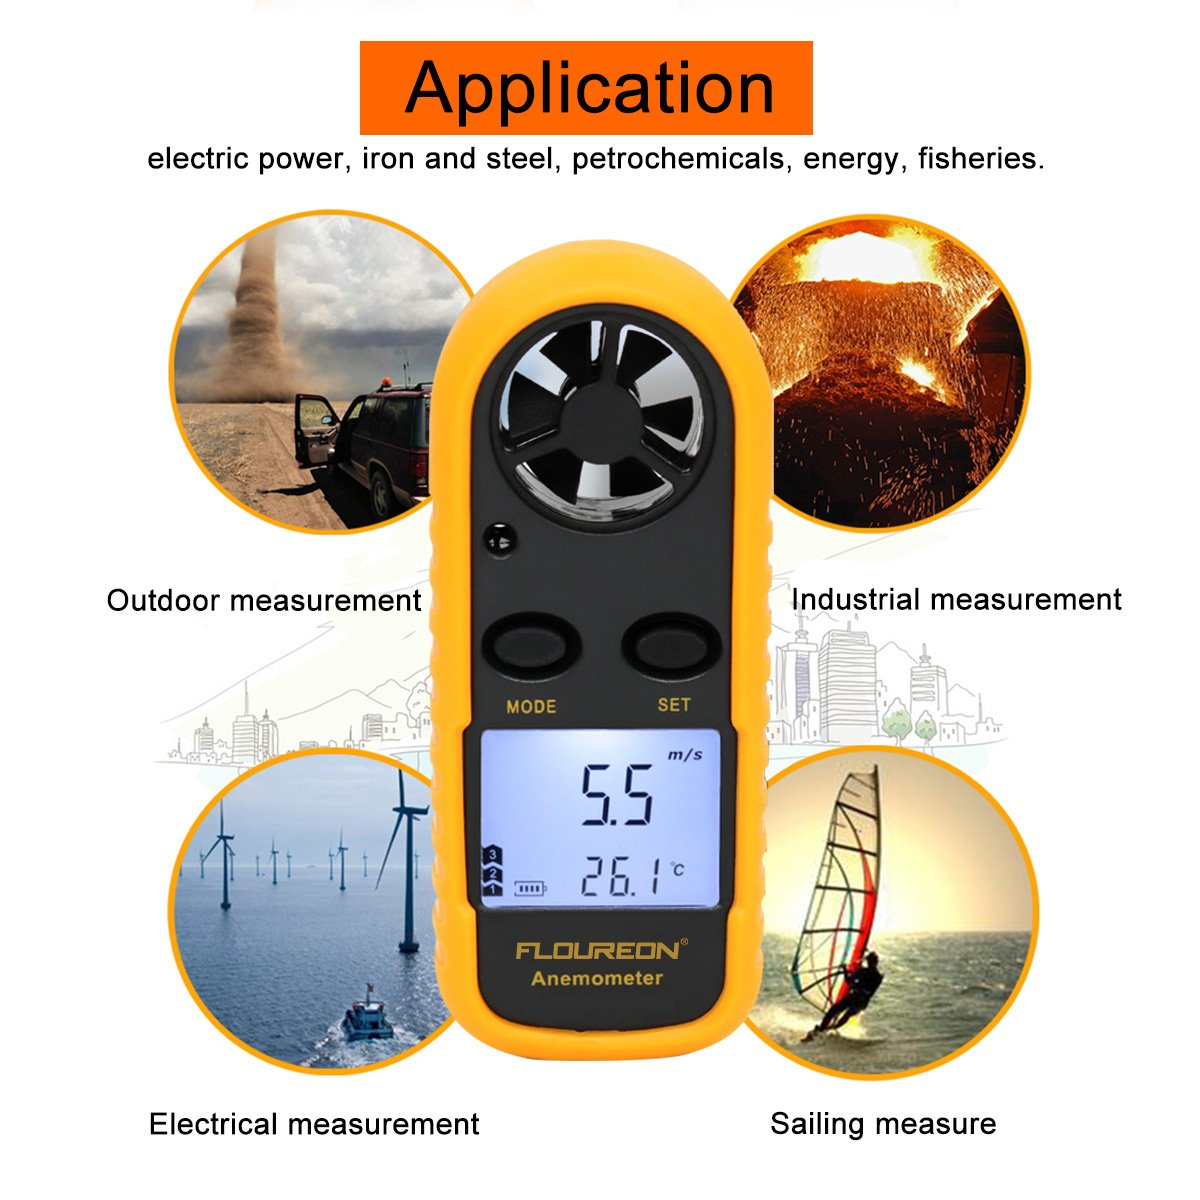 FLOUREON Digital Anemometer Handheld Wind Speed Meter with Backlit LCD Display /& Battery Etc. Flying Drone Measuring Wind Speed Air Flow and Air Temperature Accurately for Sailing Flying Kites